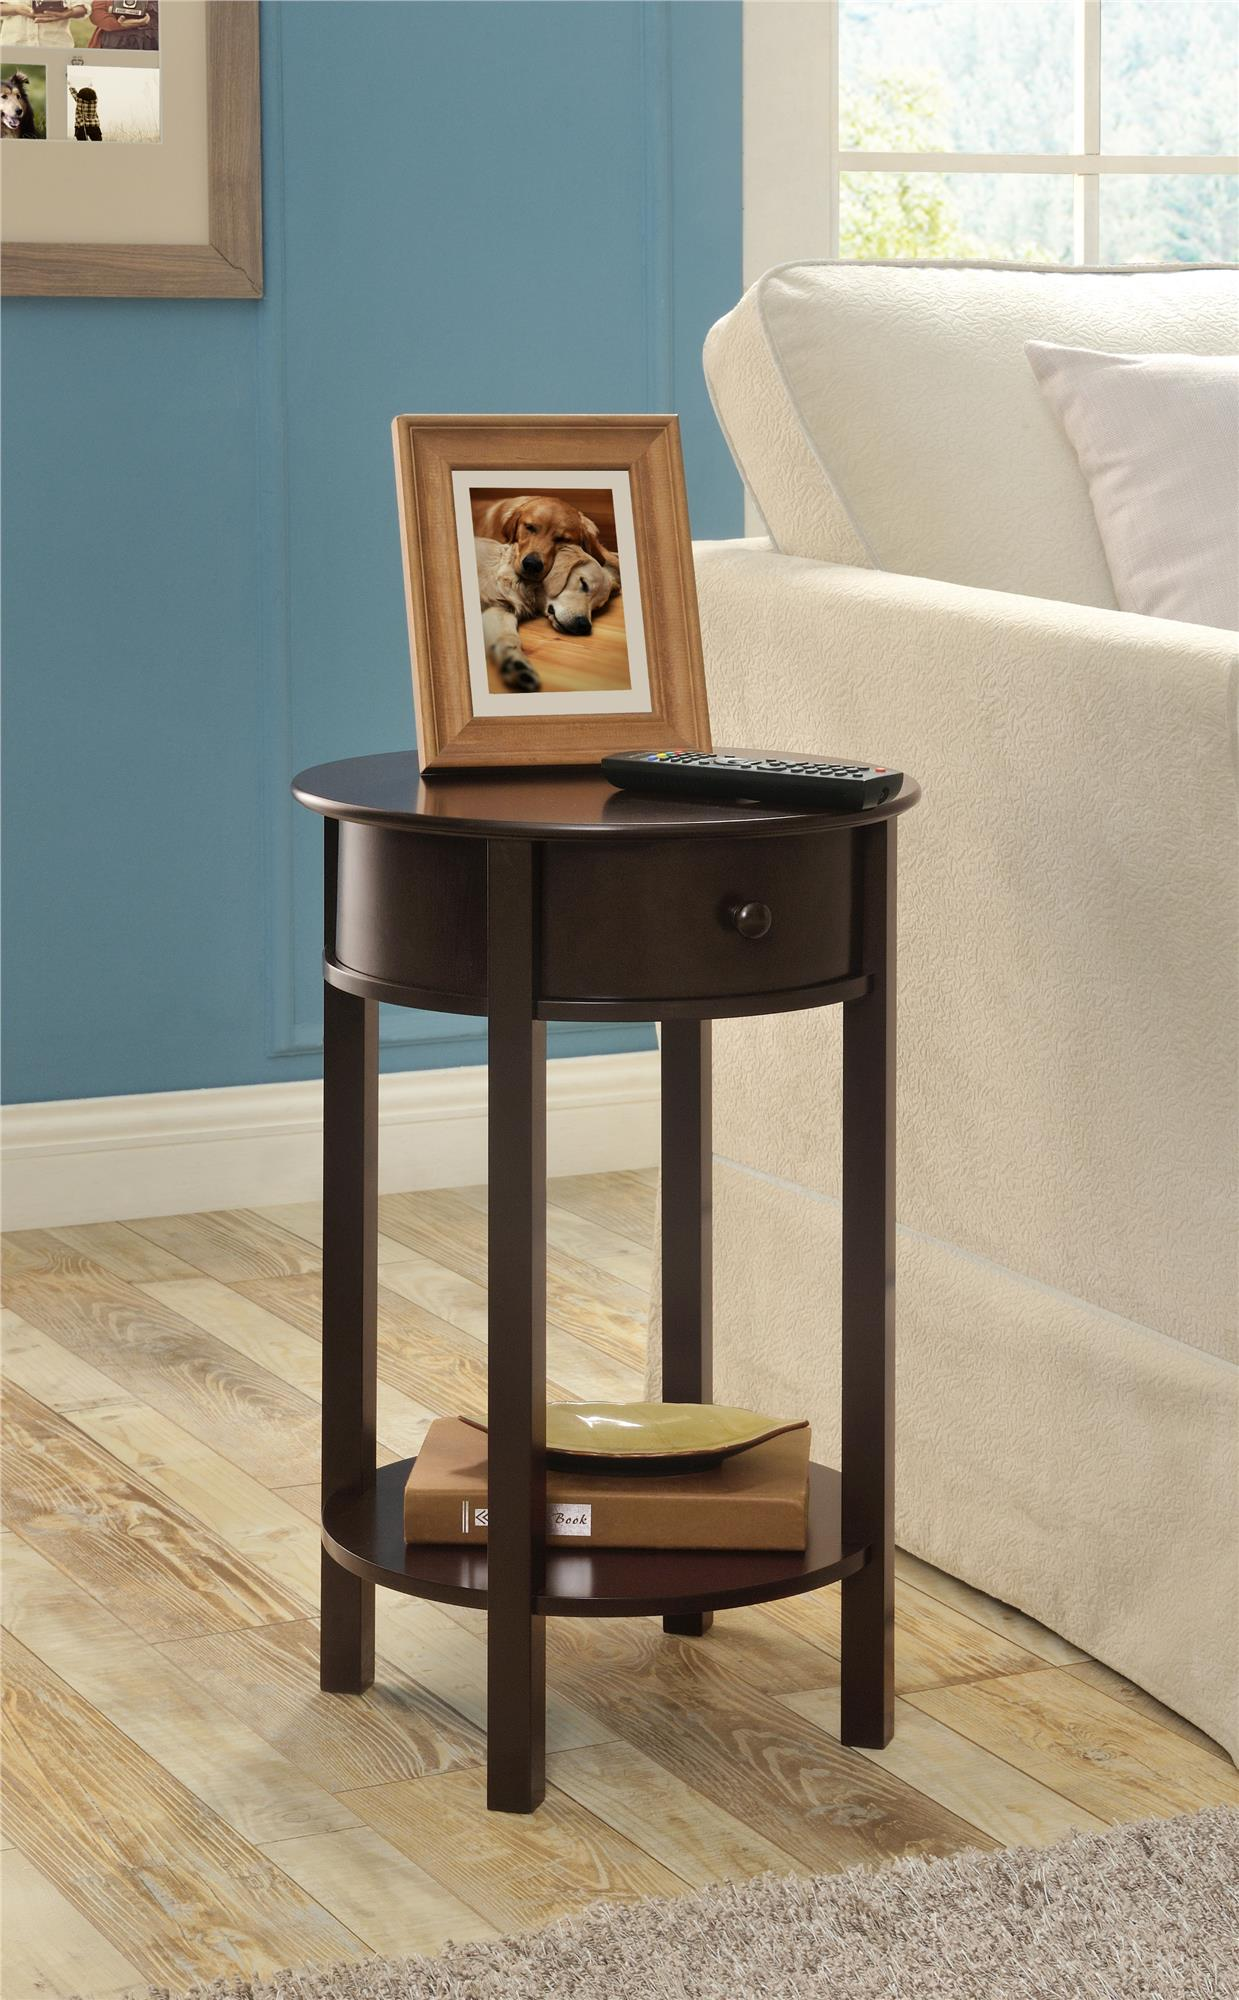 Ameriwood Home Tipton Round Accent Table, Espresso by Ameriwood Home